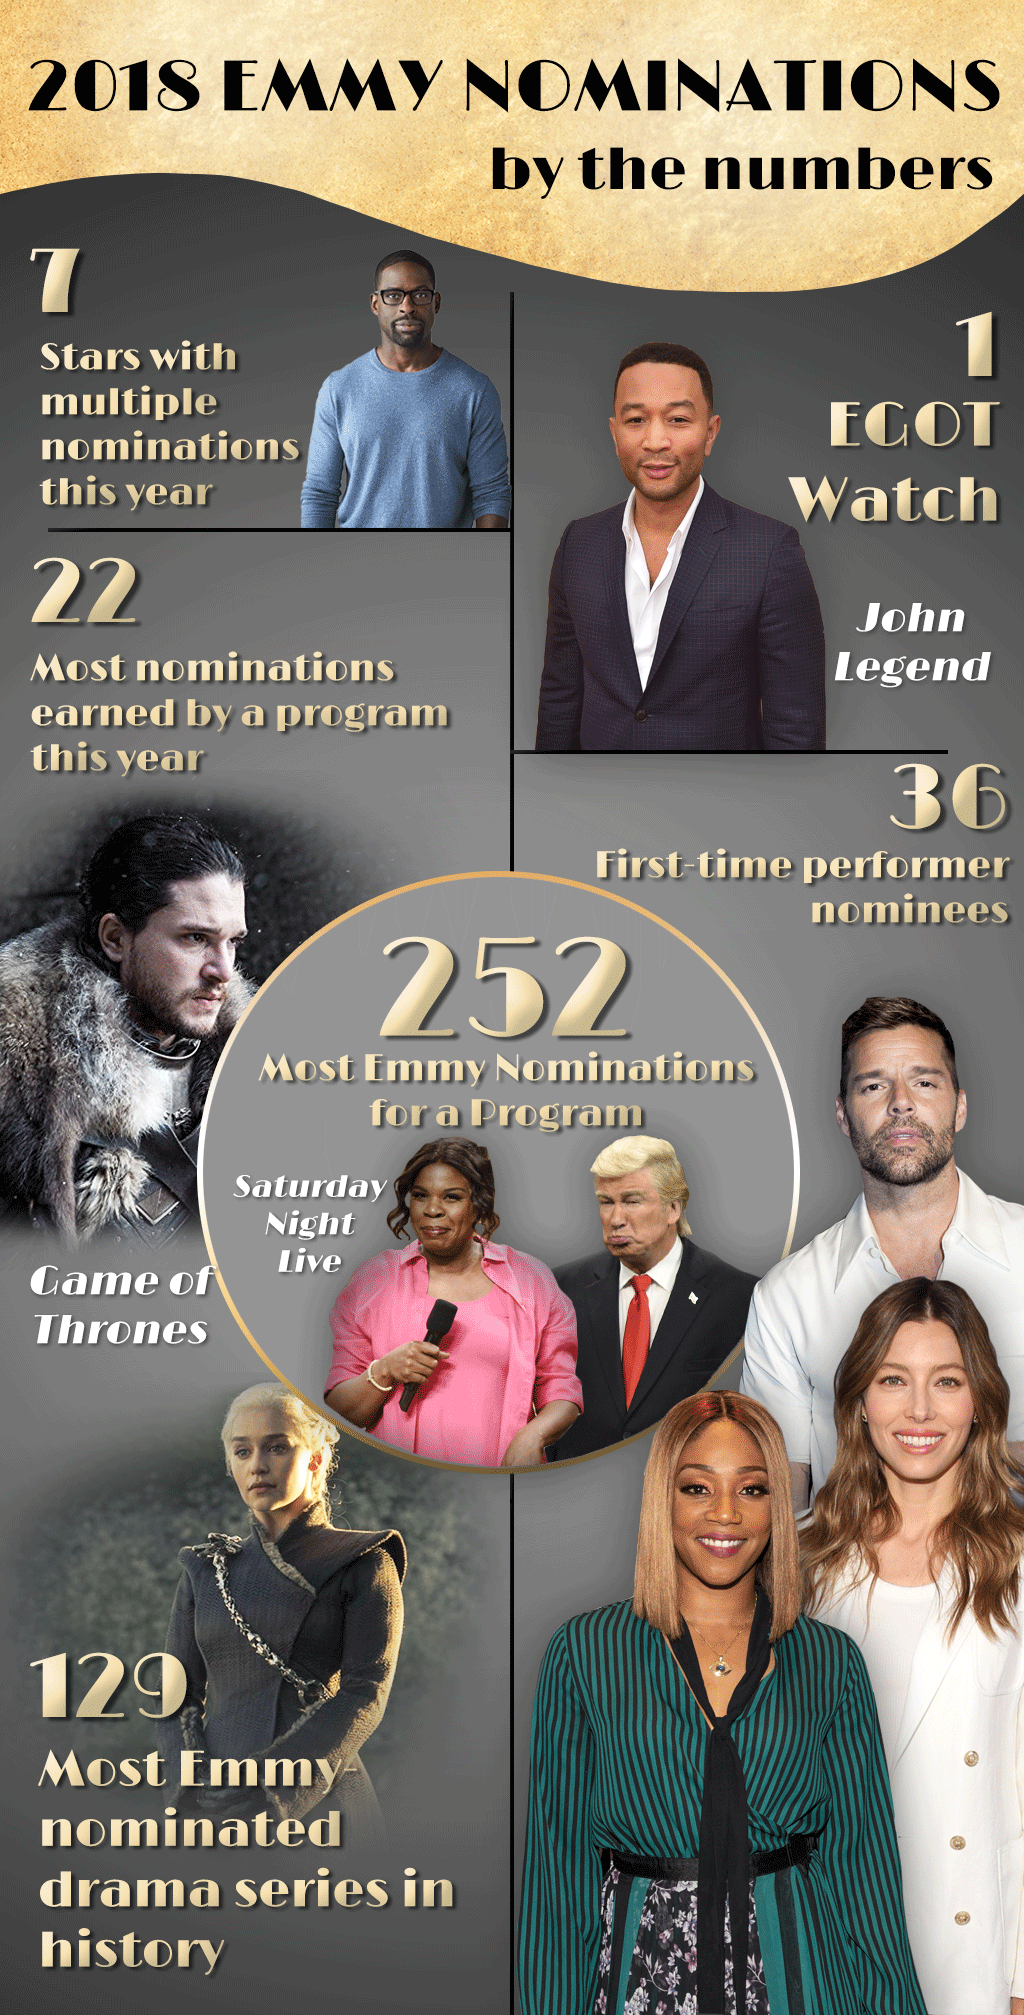 2018 Emmy Award Nominations By the Numbers